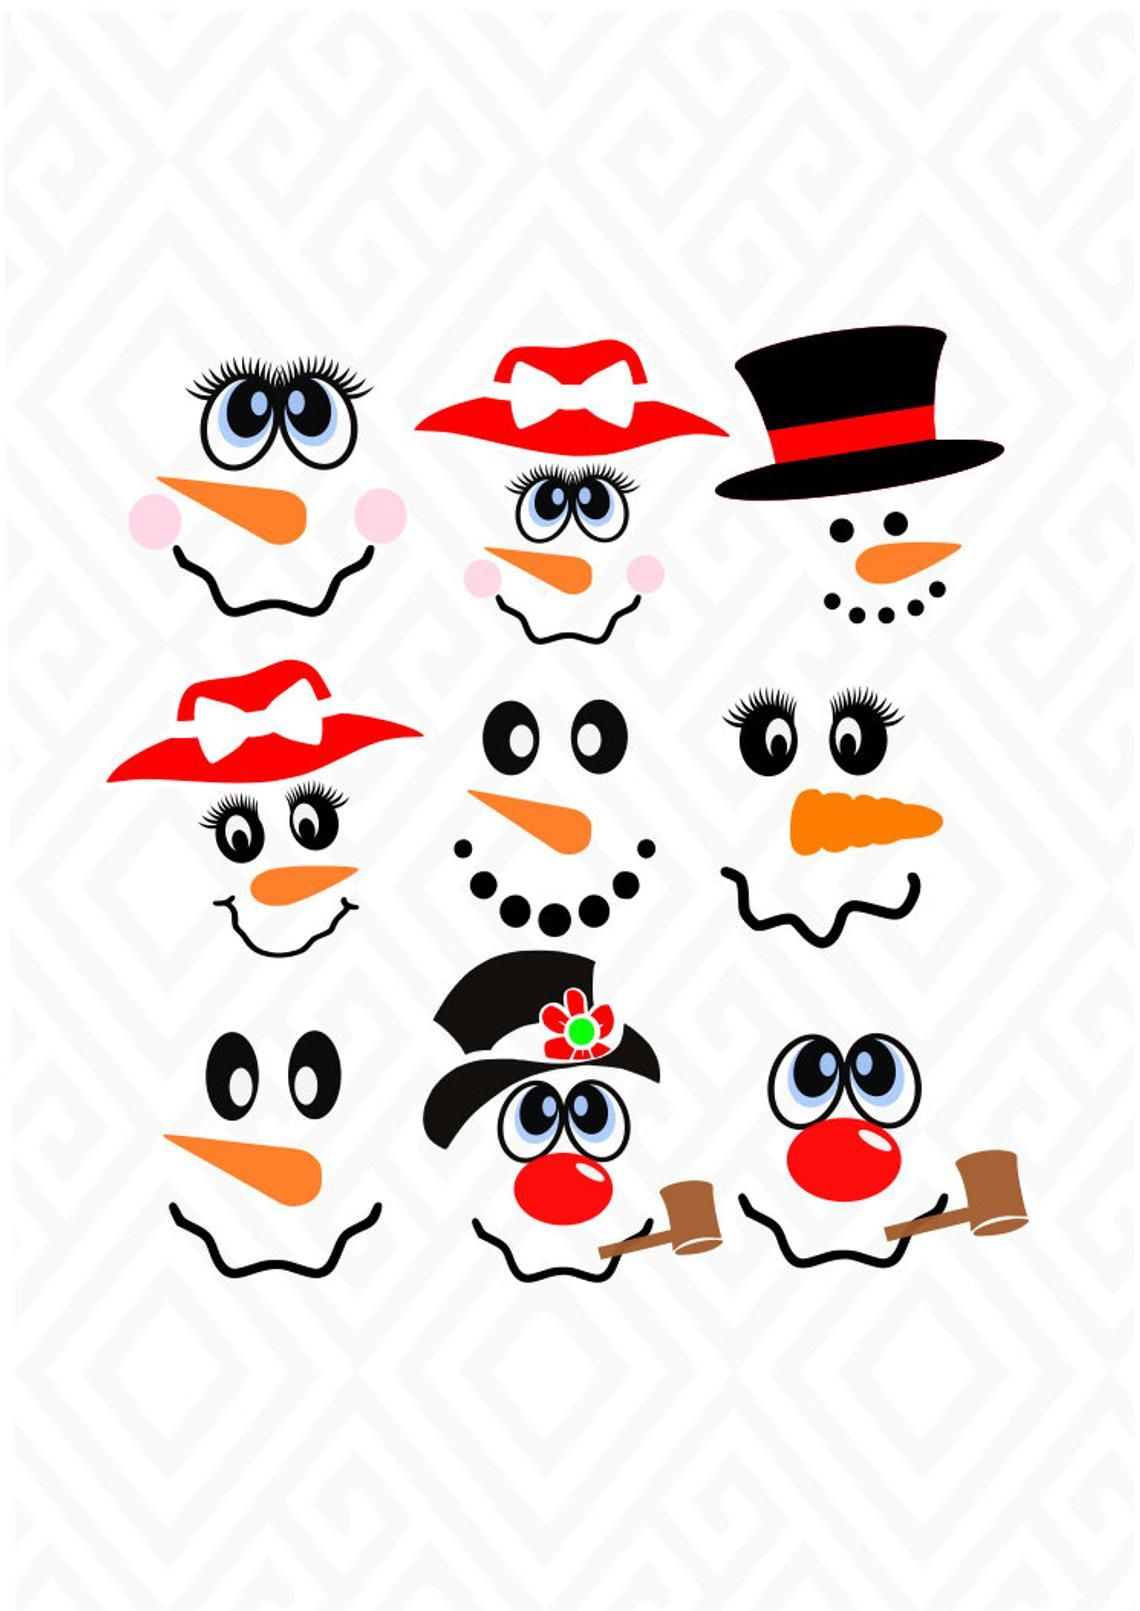 Pin on Snowman crafts